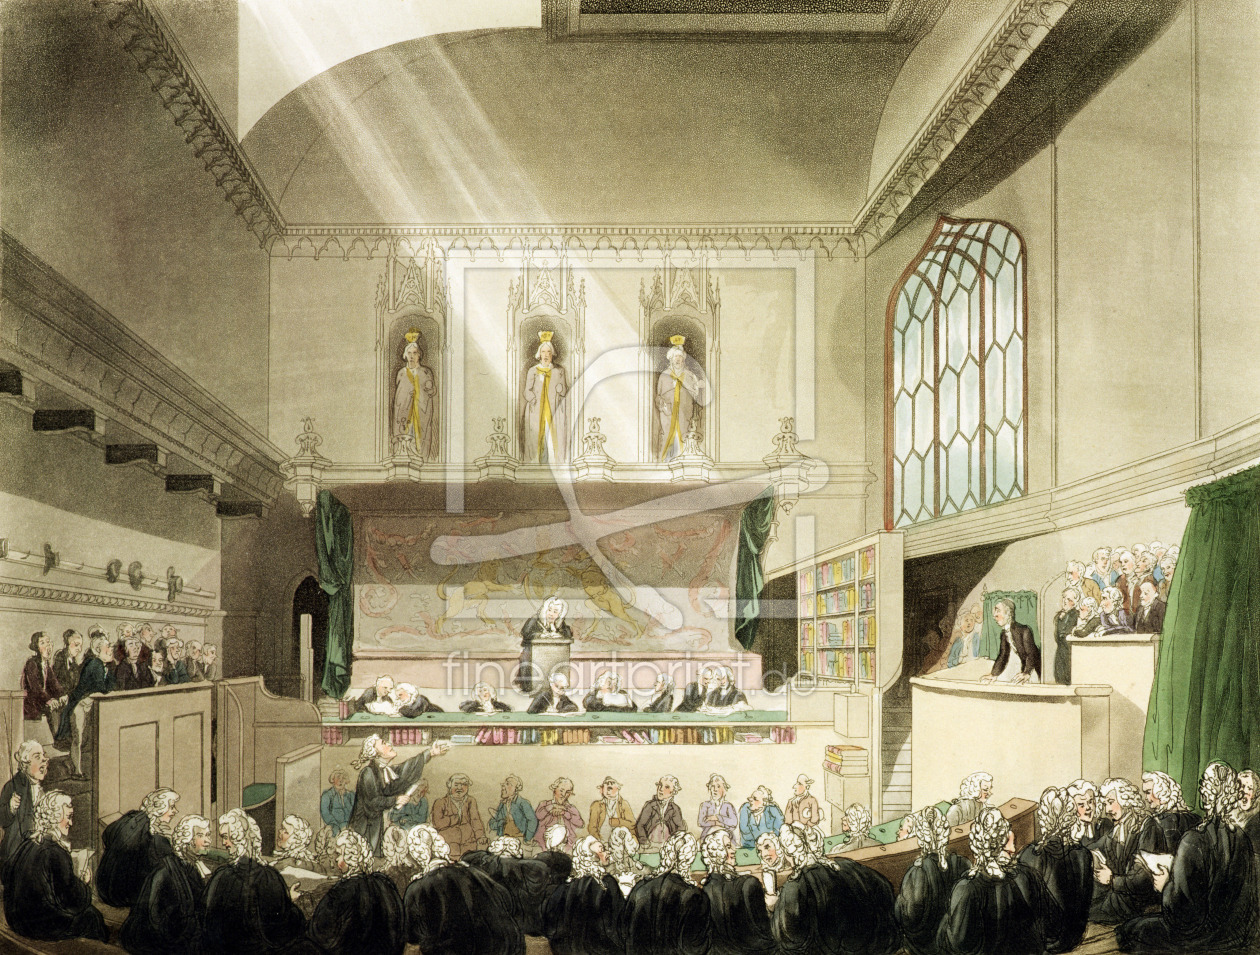 Bild-Nr.: 31002637 Court of King's Bench, Westminster Hall, from 'The Microcosm of London', engrave erstellt von Rowlandson, Thomas